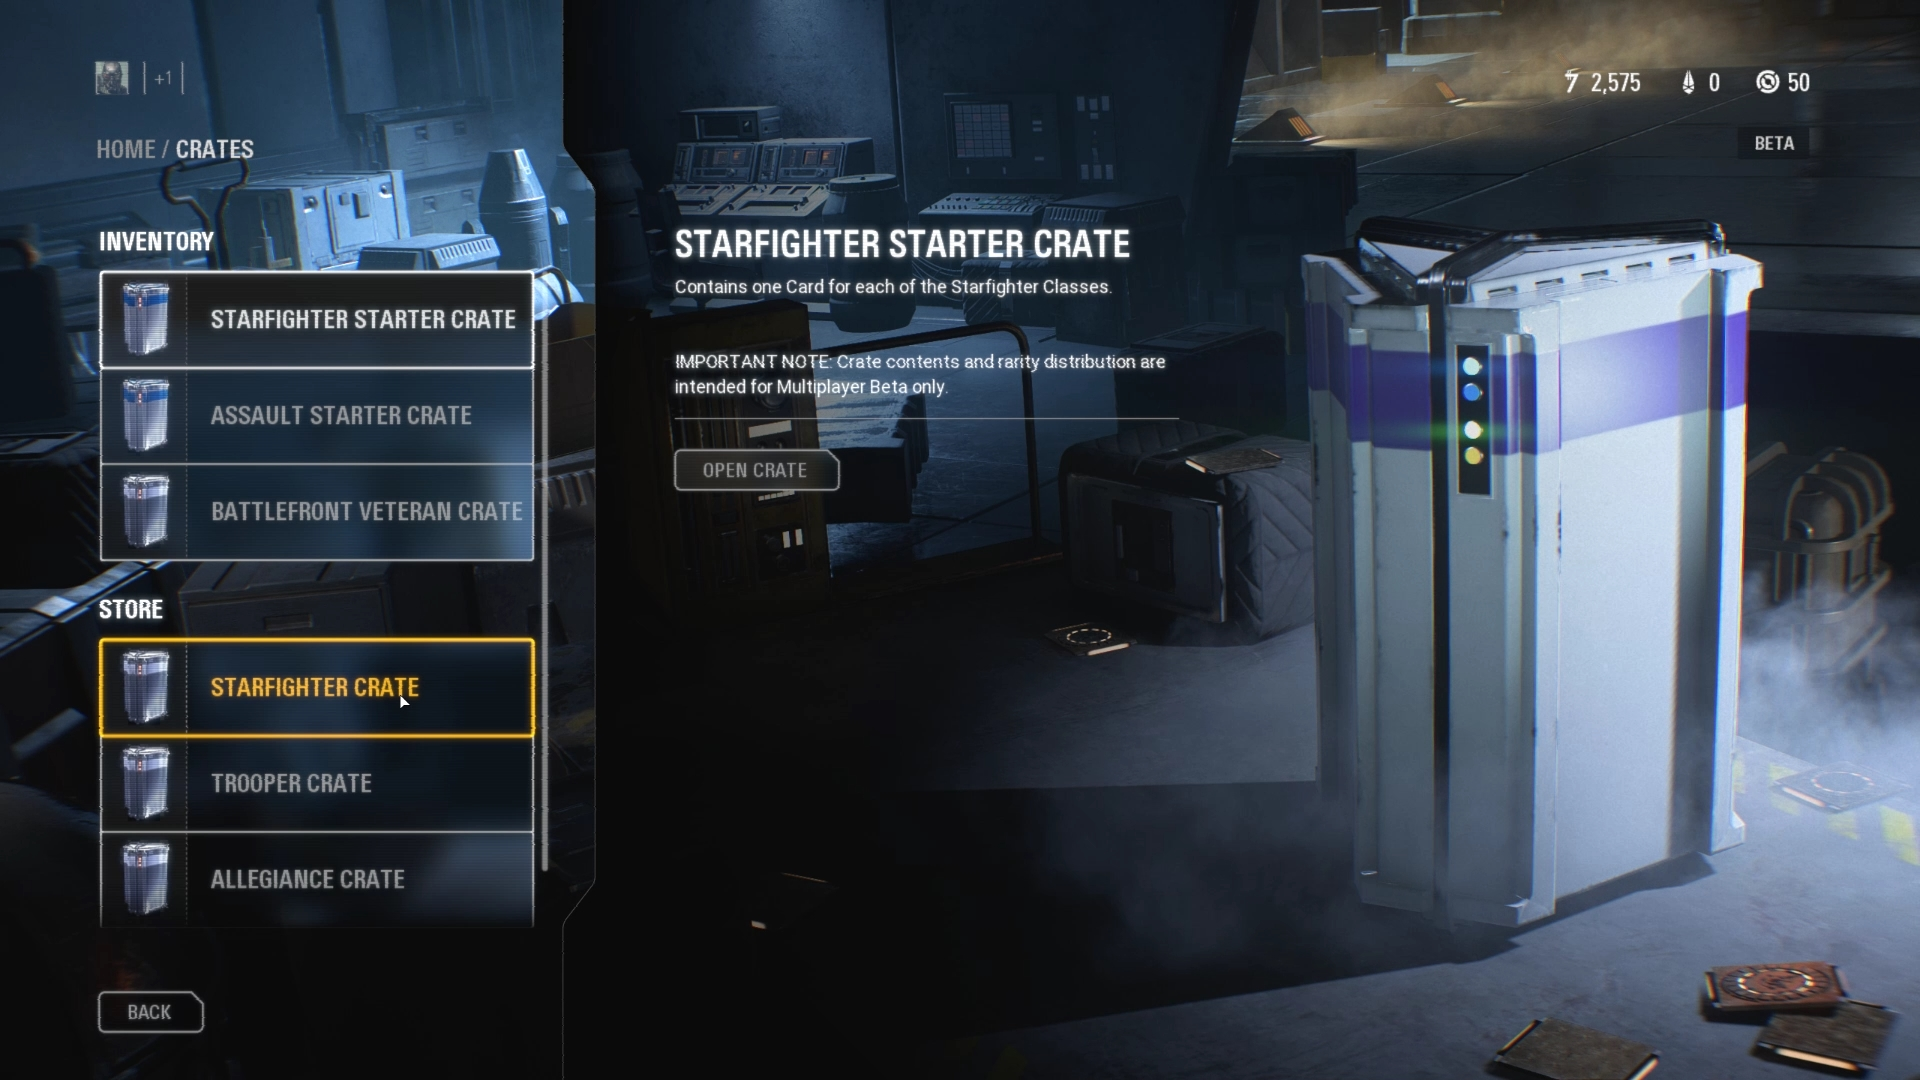 Let's not mince words; Star Wars Battlefront 2 loot boxes are pay-to-win